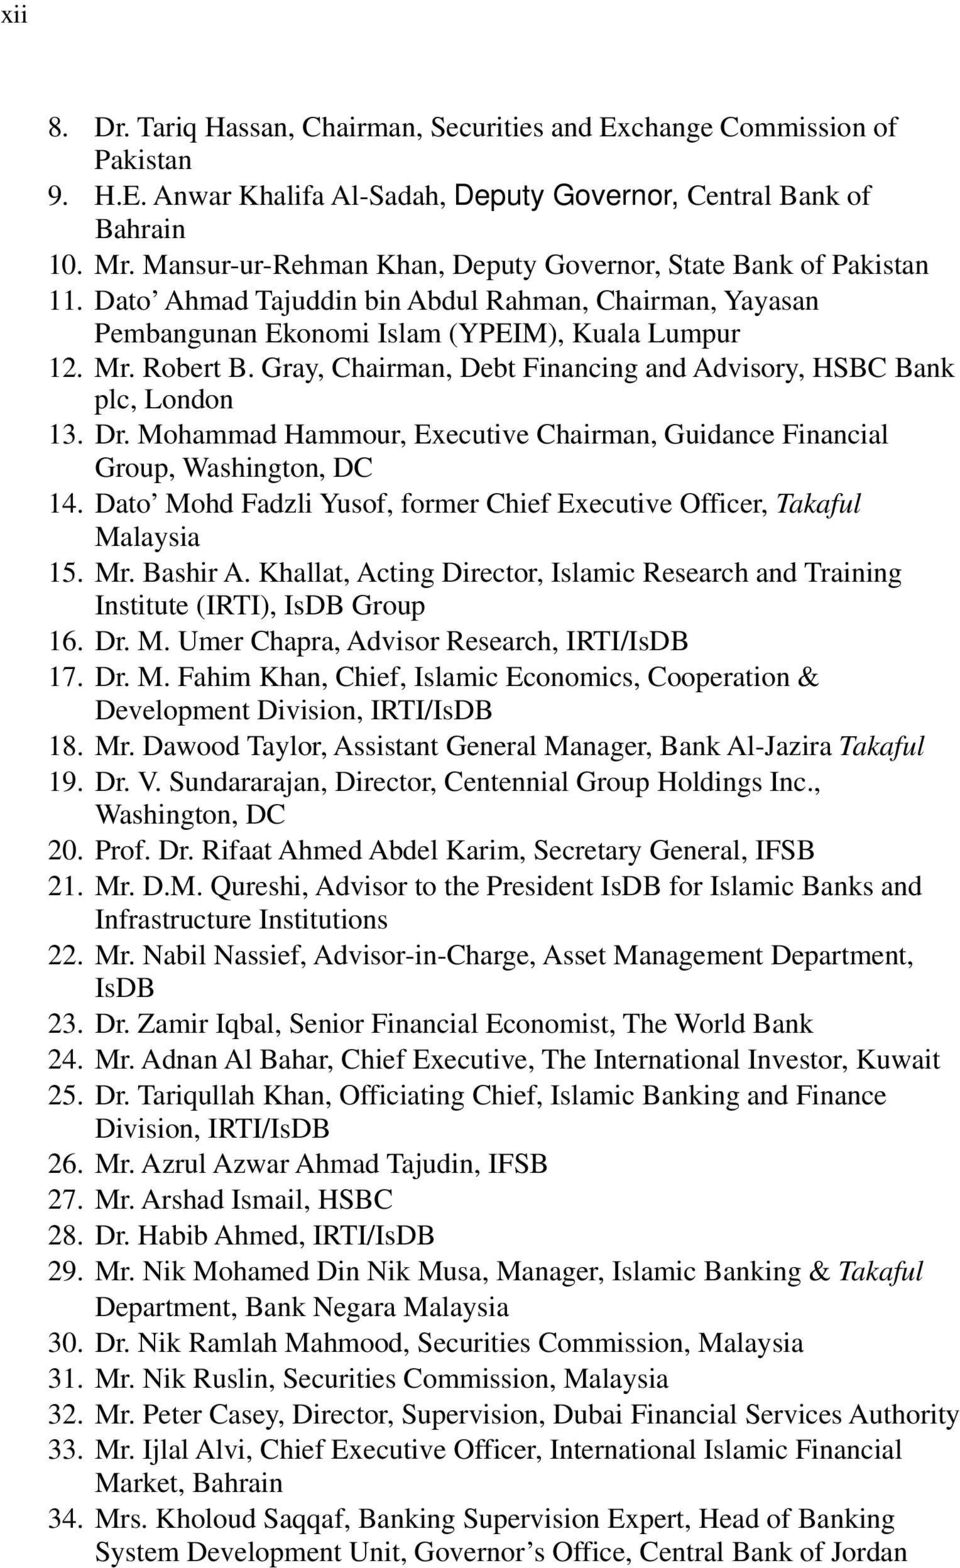 Gray, Chairman, Debt Financing and Advisory, HSBC Bank plc, London 13. Dr. Mohammad Hammour, Executive Chairman, Guidance Financial Group, Washington, DC 14.